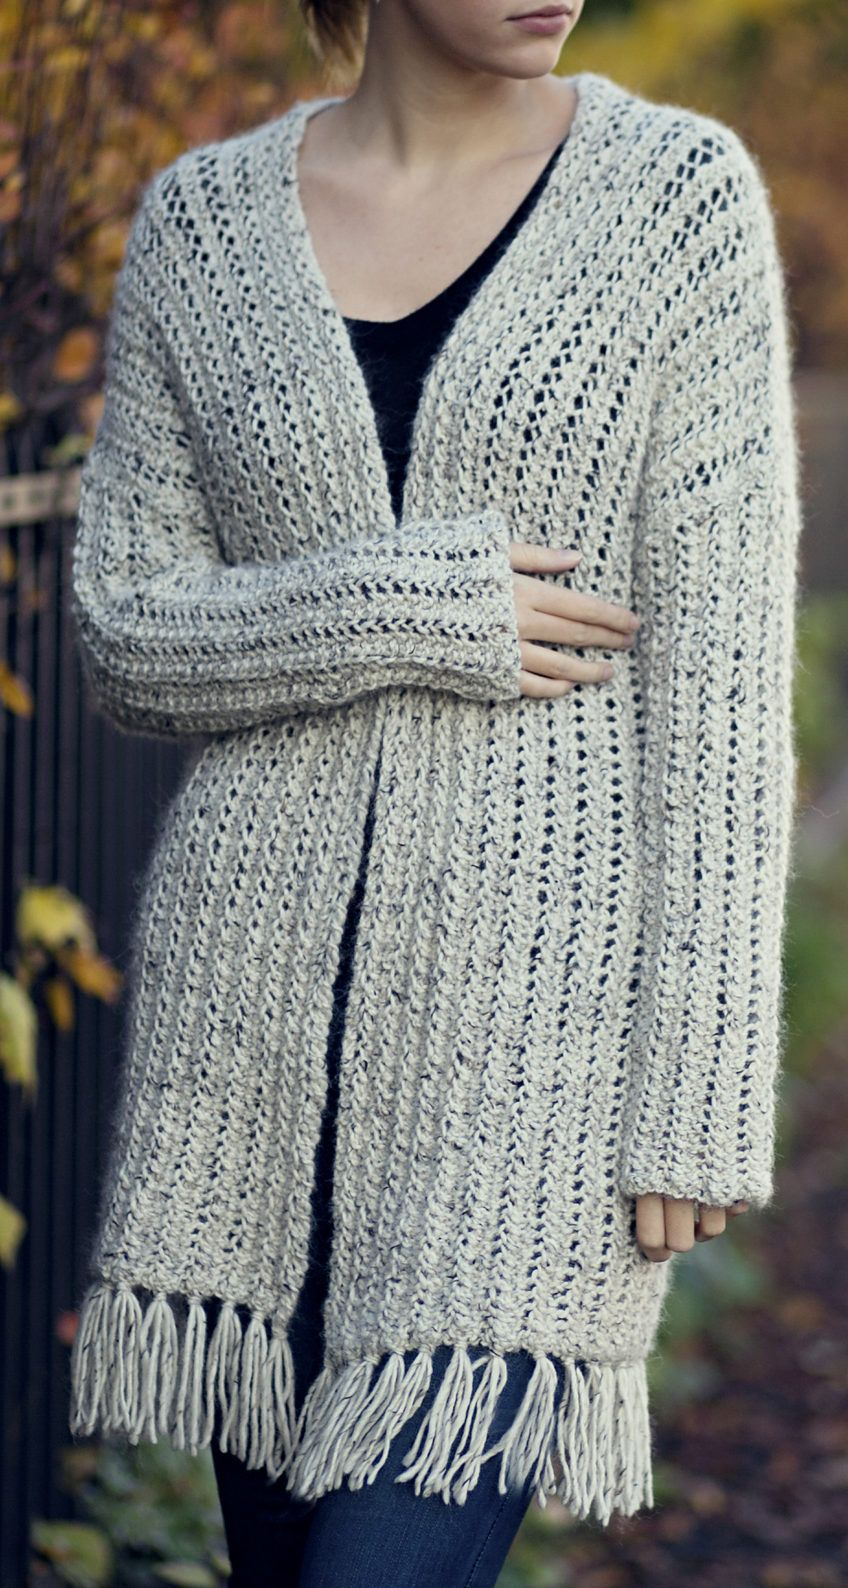 Free Limited Time Only - Knitting Pattern for 2 Row Repeat Lace Rib ...